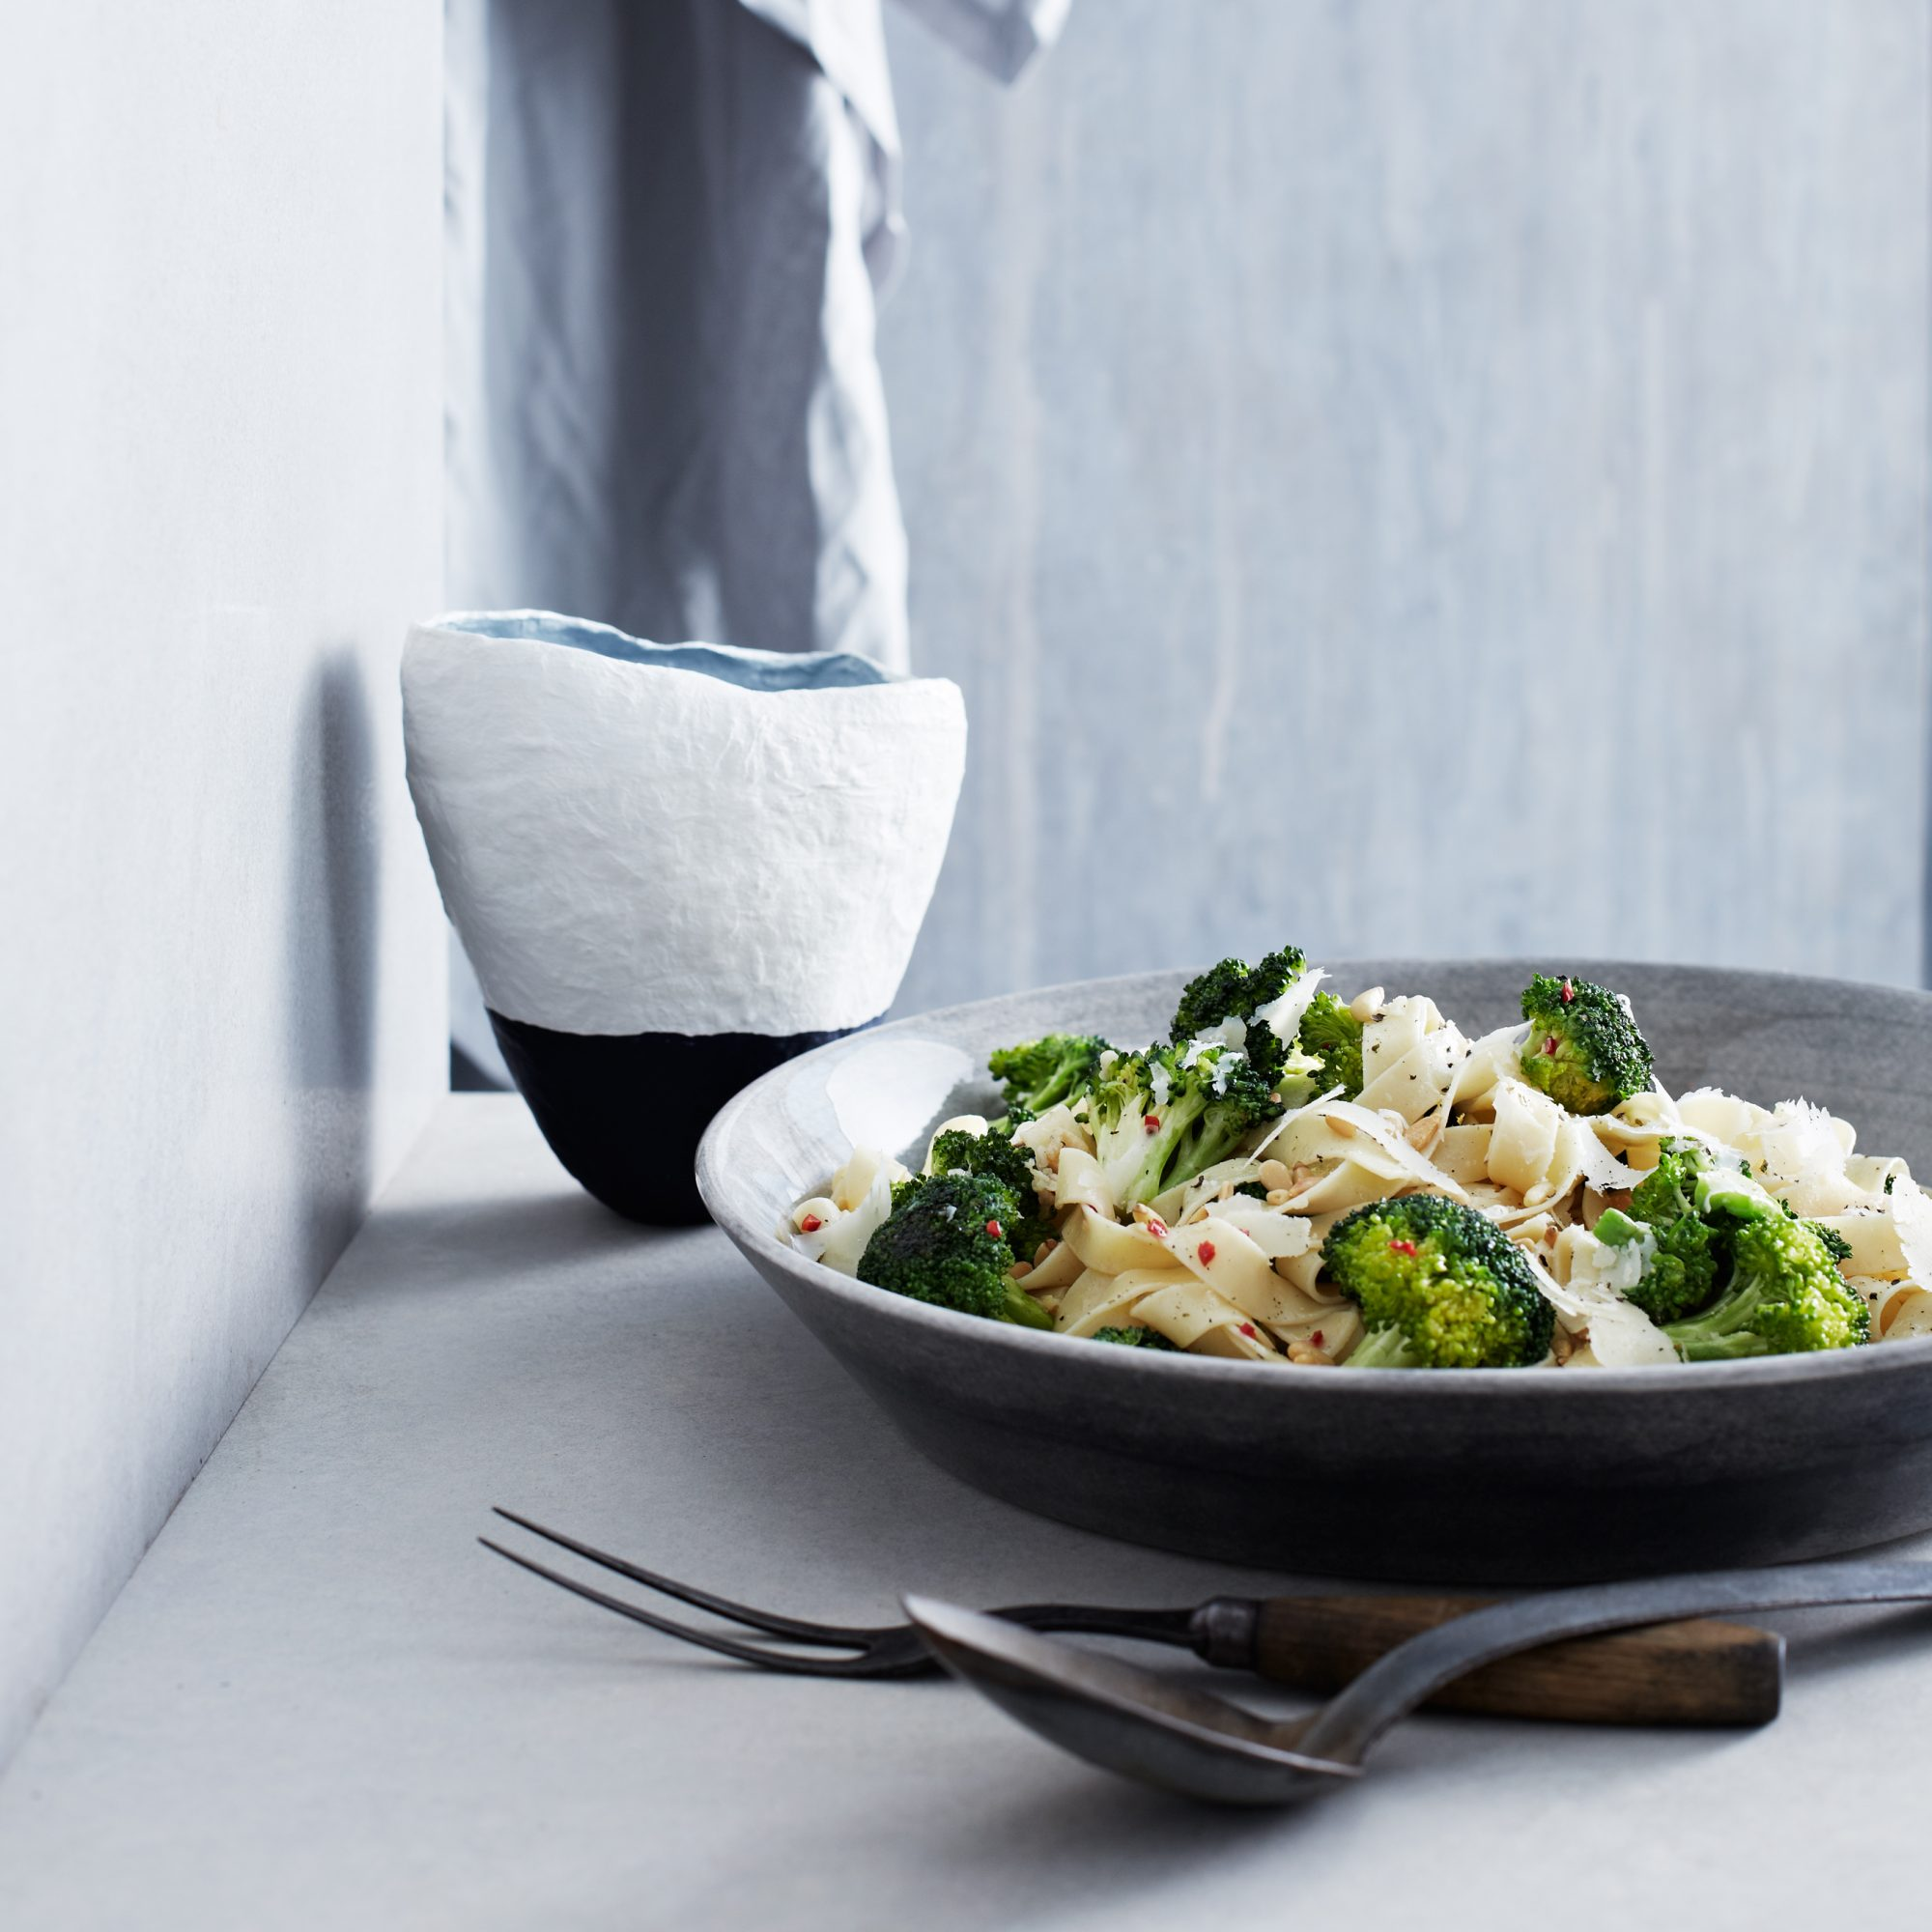 Fettuccine with Spicy Broccoli